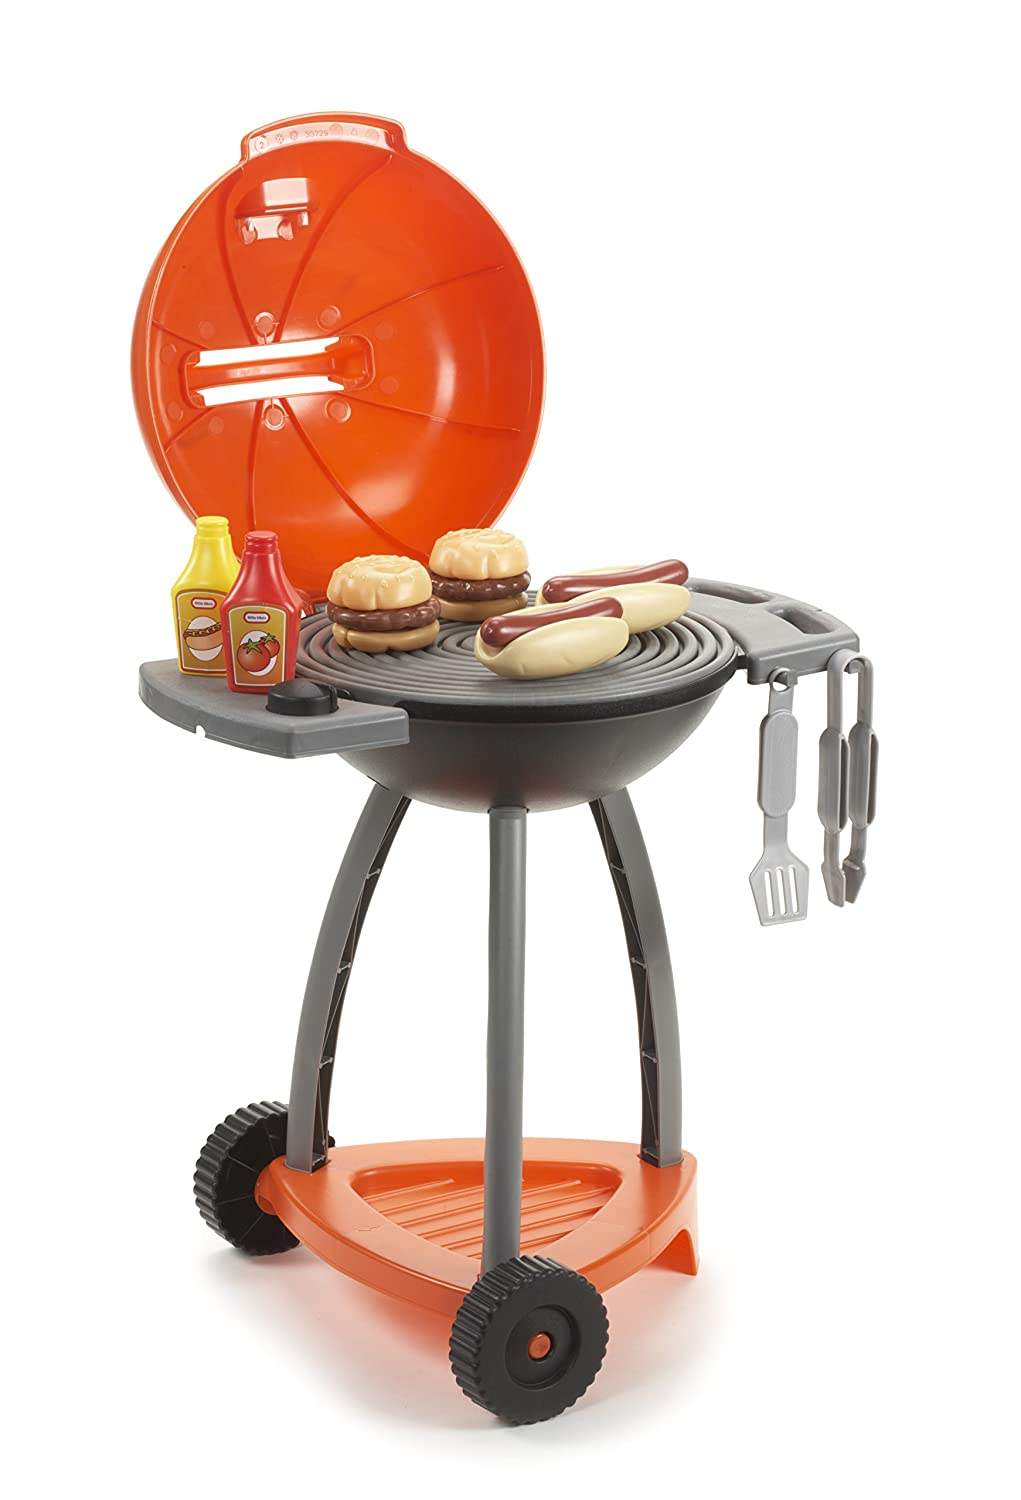 Little Tikes Sizzle and Serve Grill Play Set, Kitchen Playsets ...